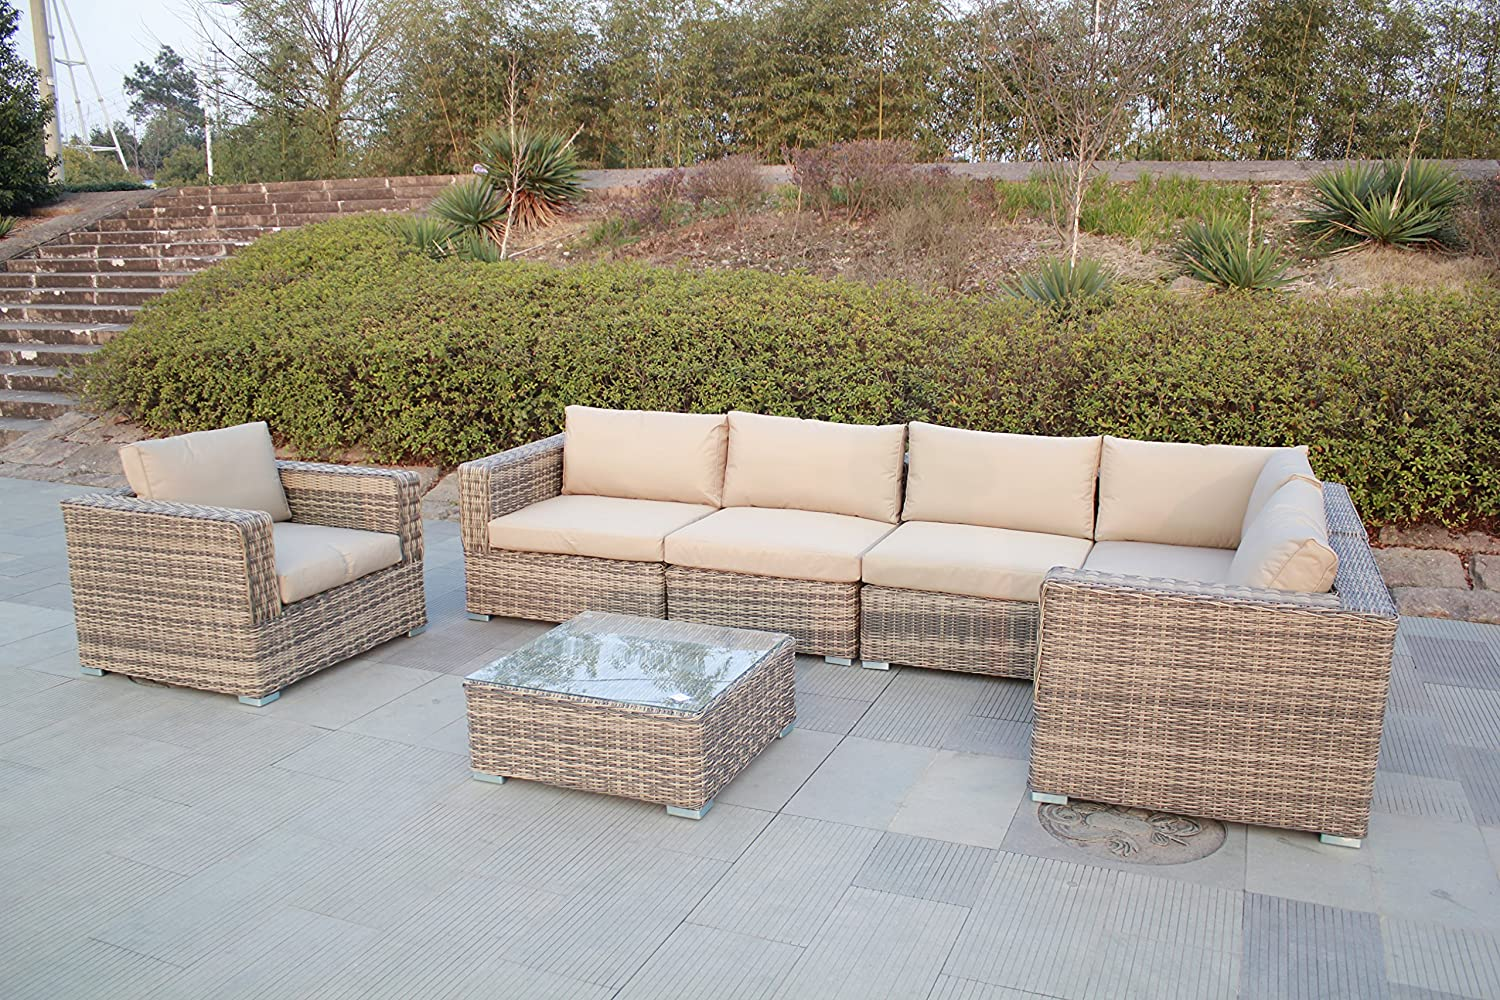 husen Outdoor Furniture Patio Sofa 7 Piece Sectional Table Chair Wicker (7 pcs Khaki)